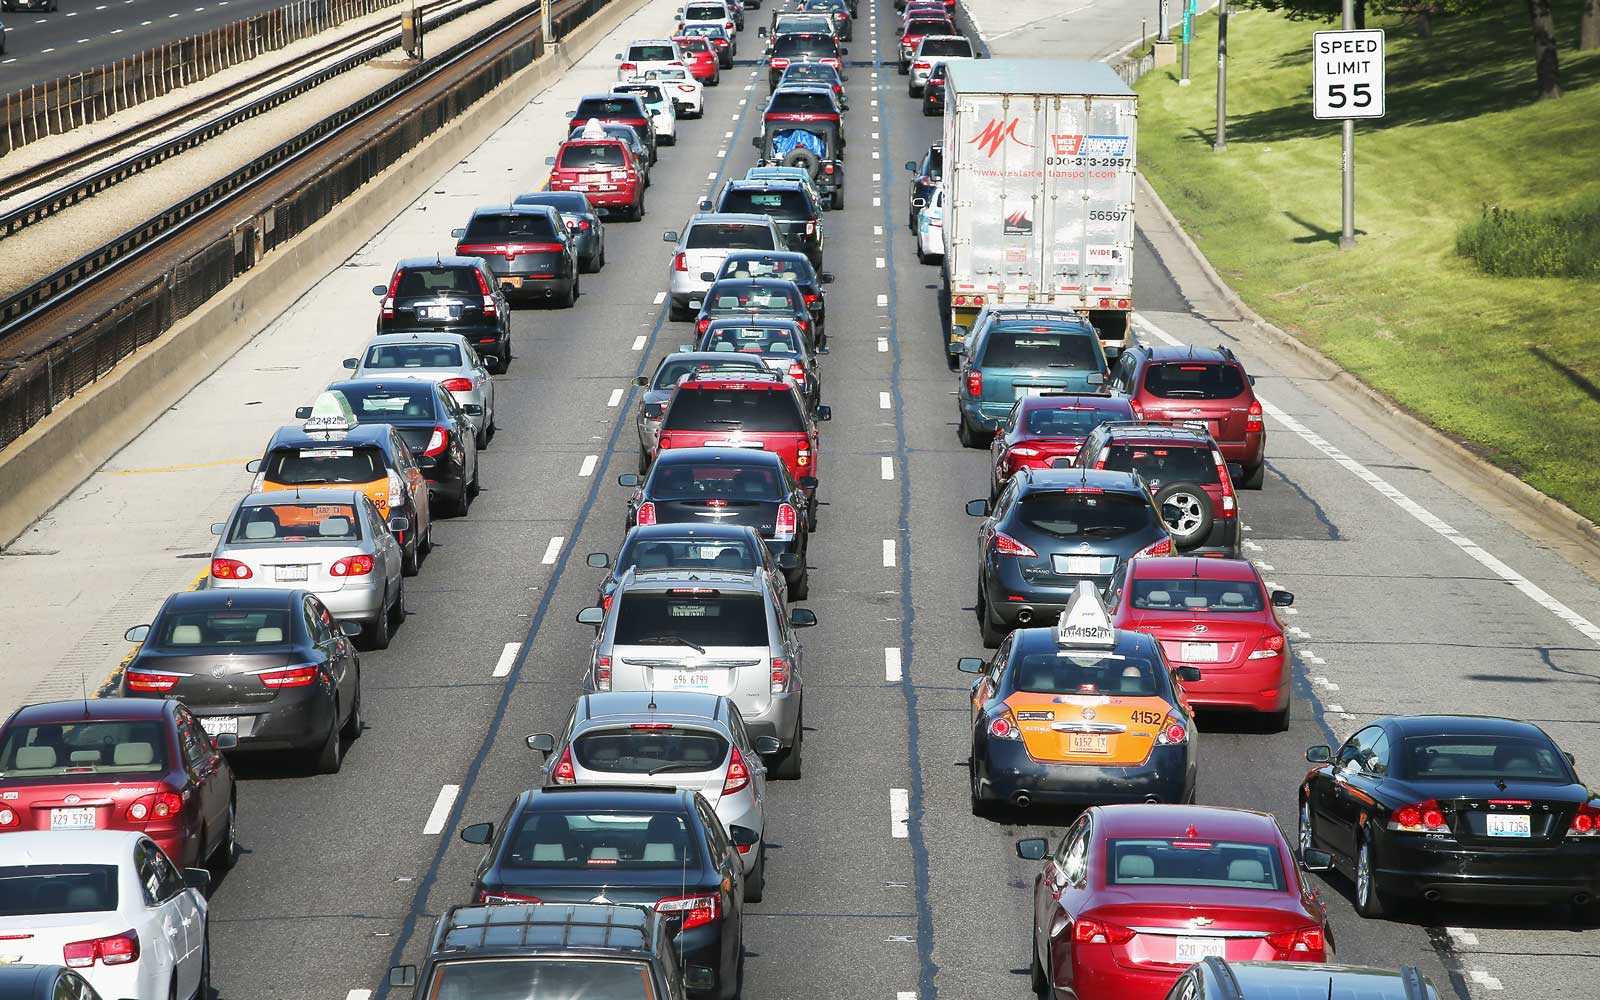 If you're traveling Memorial Day weekend, we have some bad news about traffic